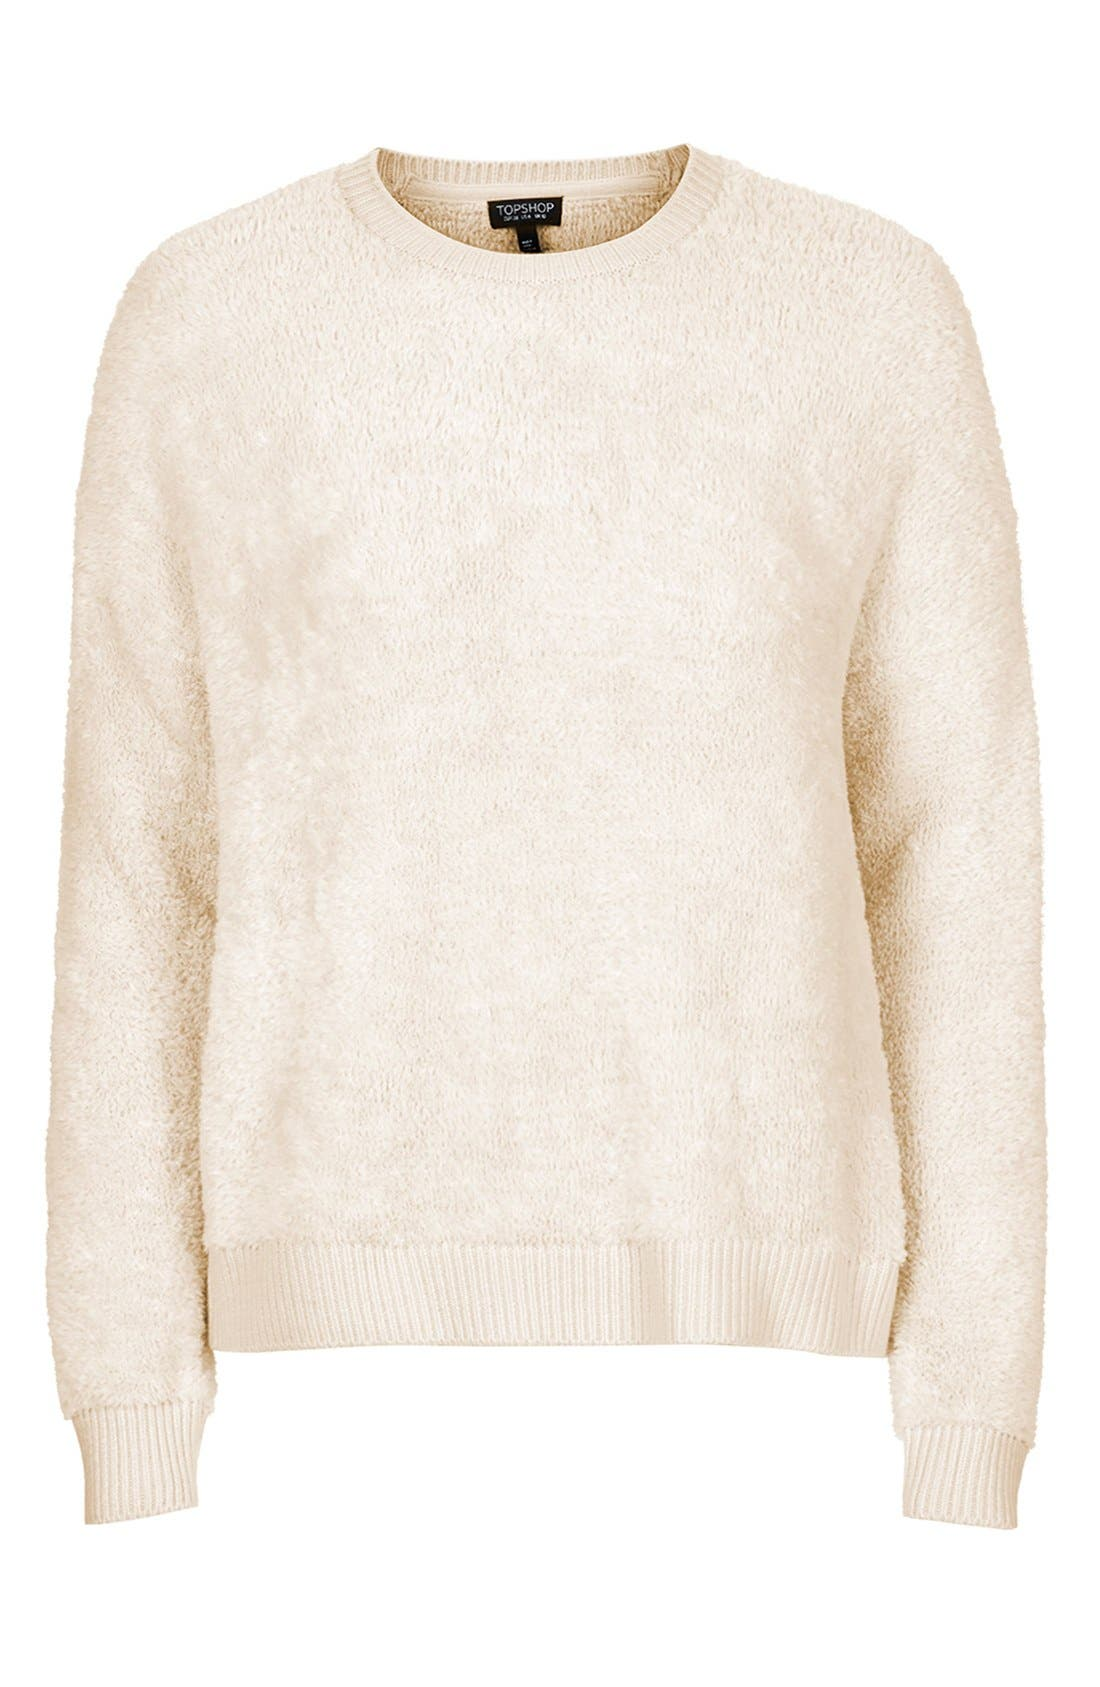 Alternate Image 3  - Topshop Fluffy Pullover Sweater